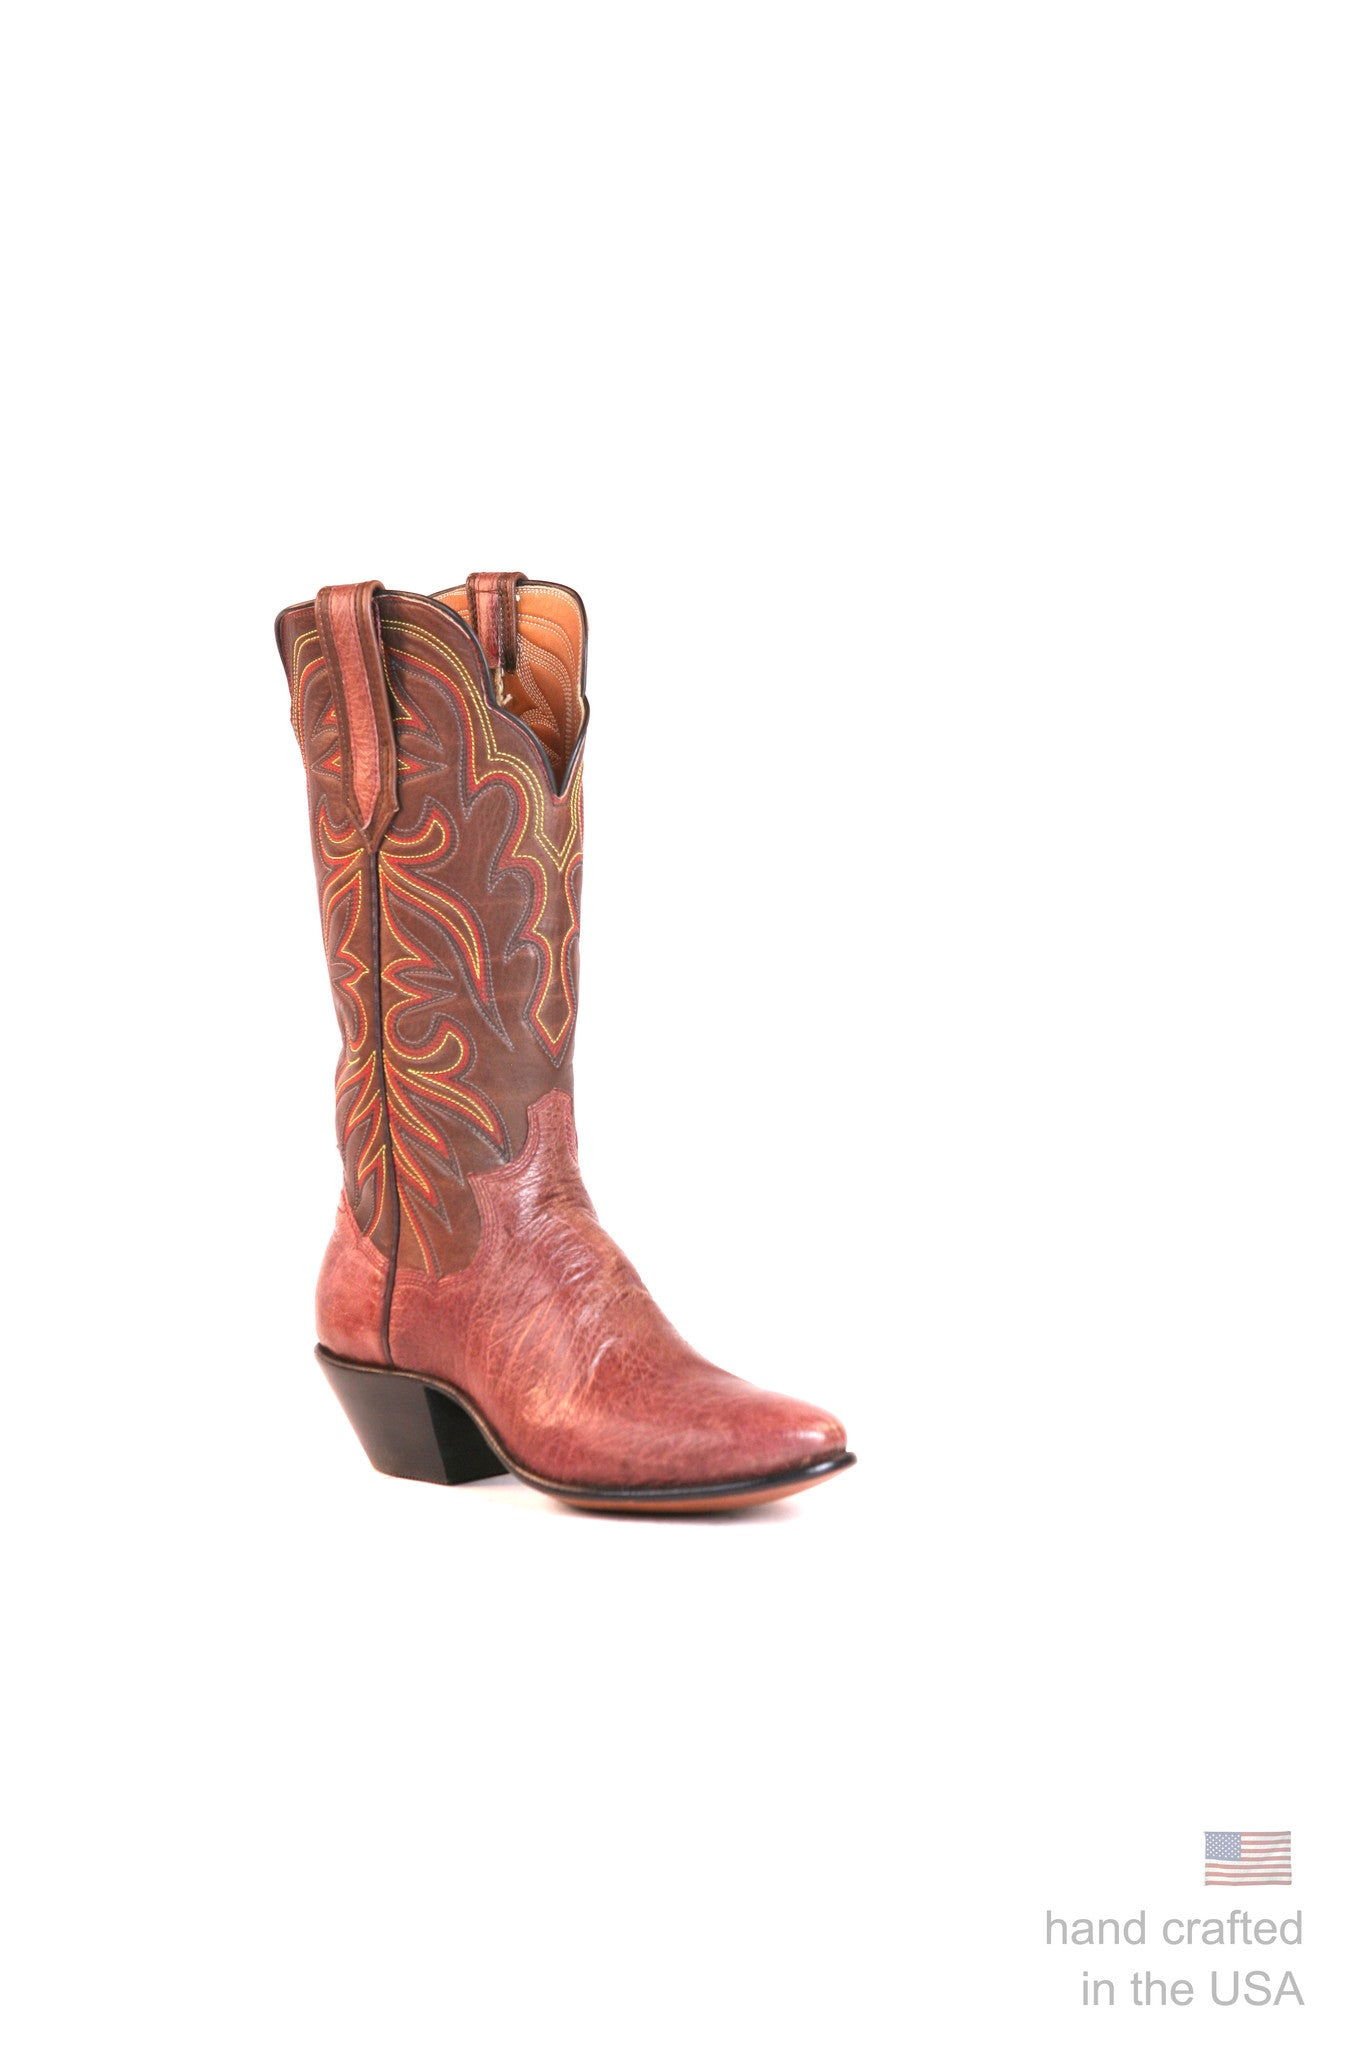 Singles: Boot 0019: Size 5C